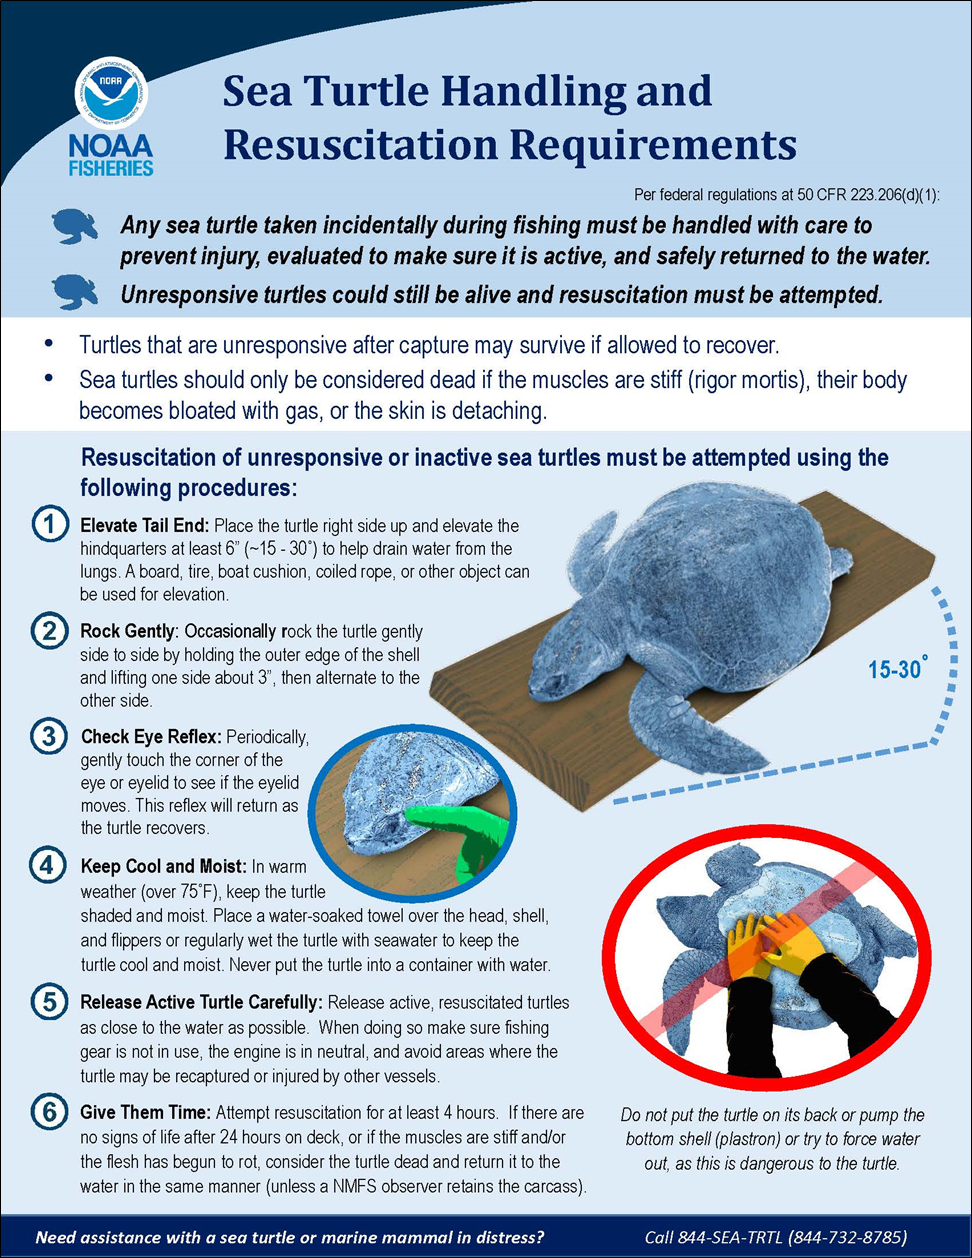 Sea Turtle Handling and Resuscitation Requirements Infographic